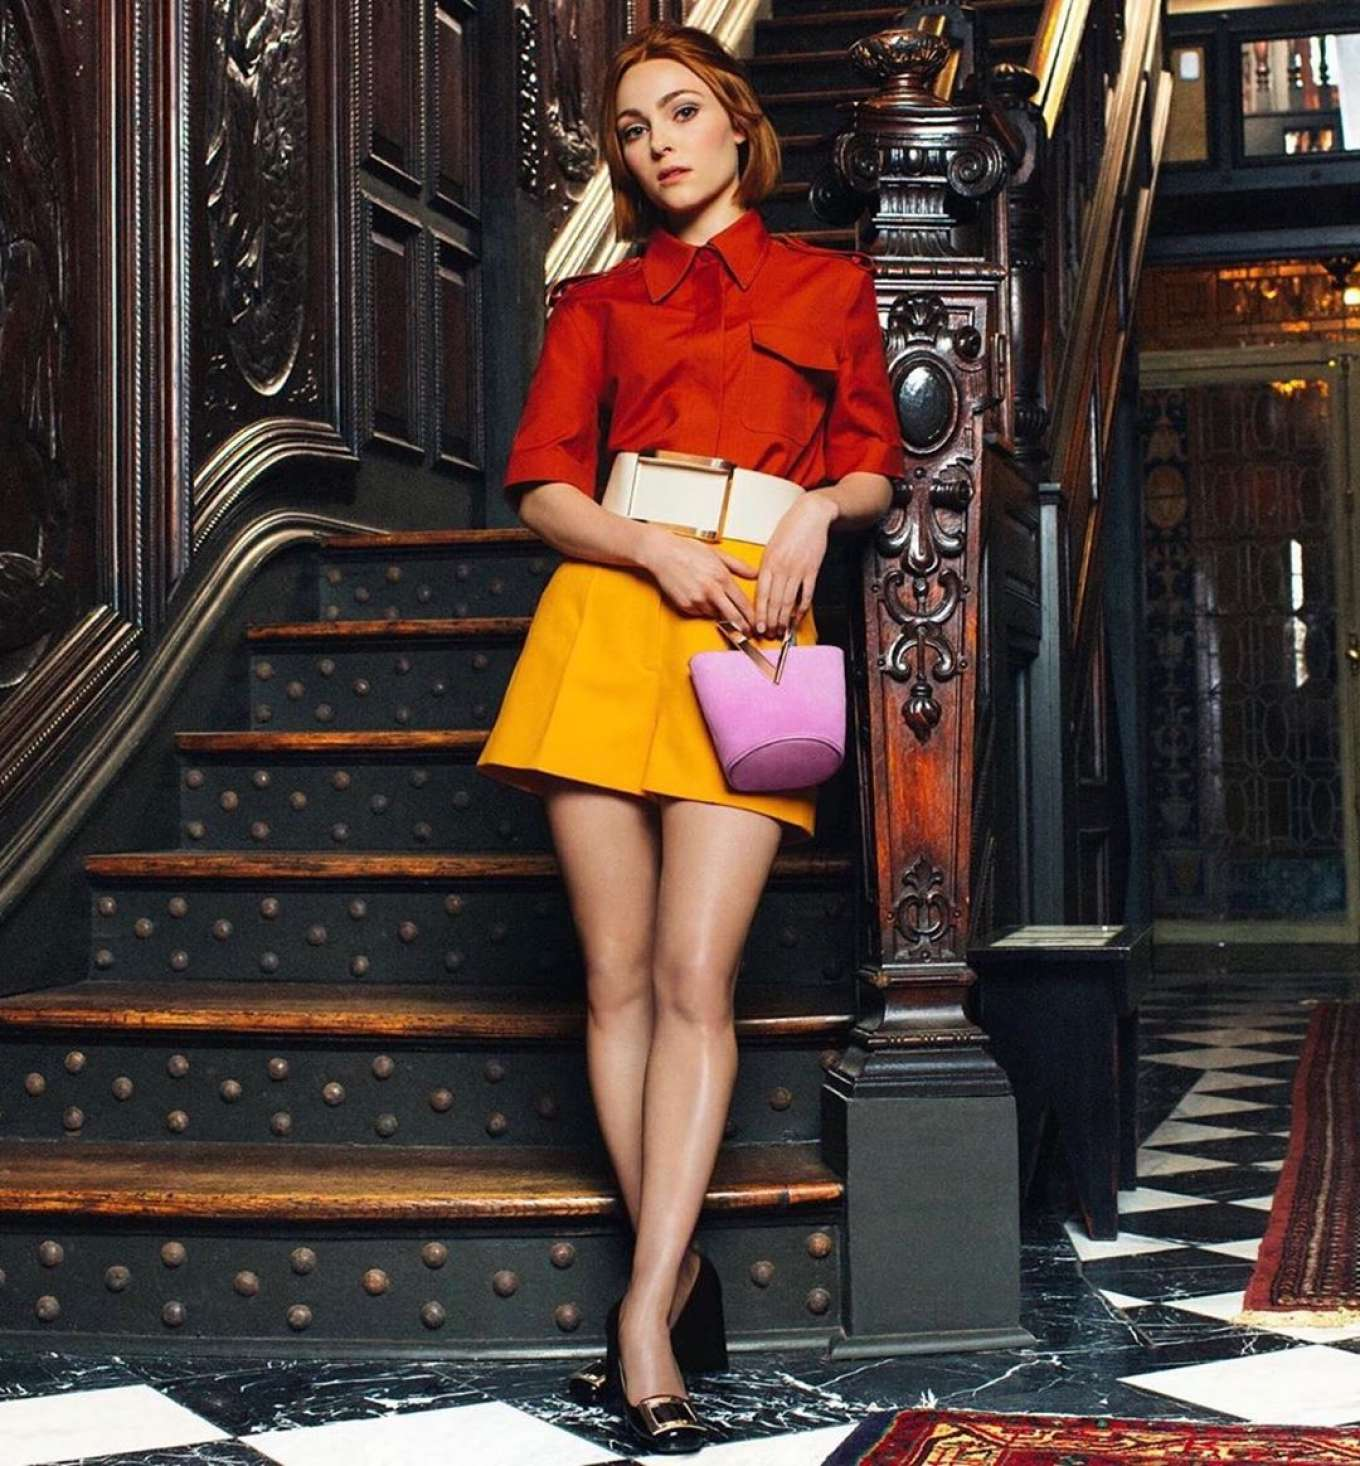 AnnaSophia Robb stars in the Roger Vivier Fall/Winter 2019 Campaign